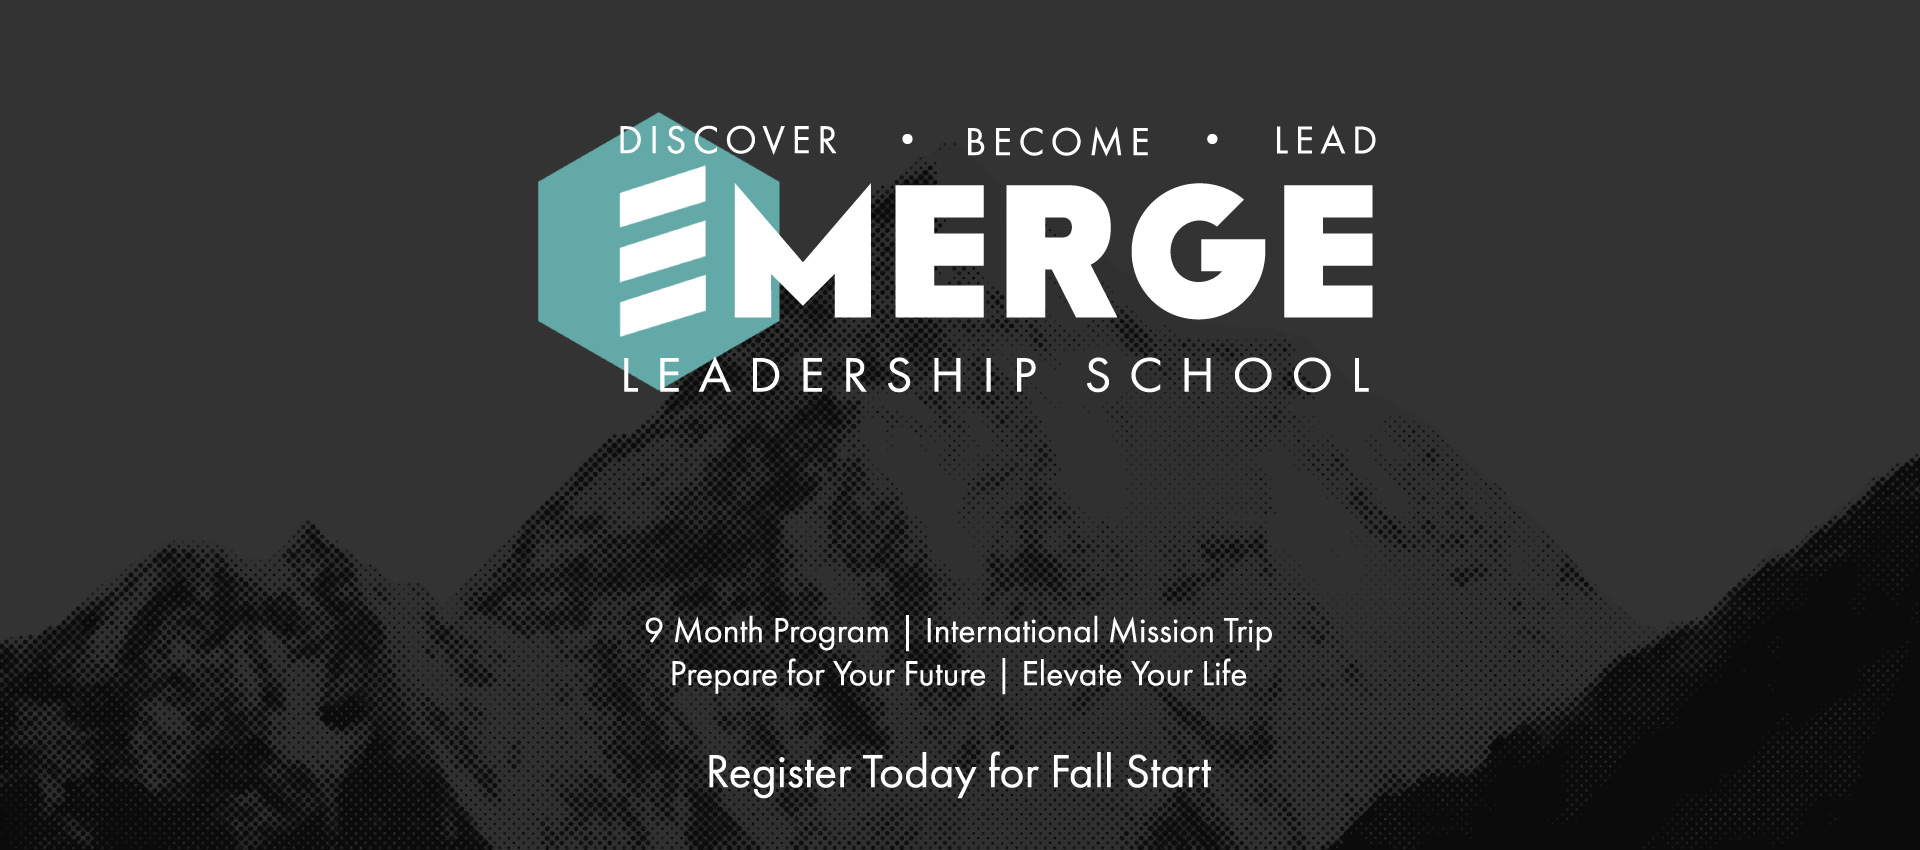 Emerge Leadership School